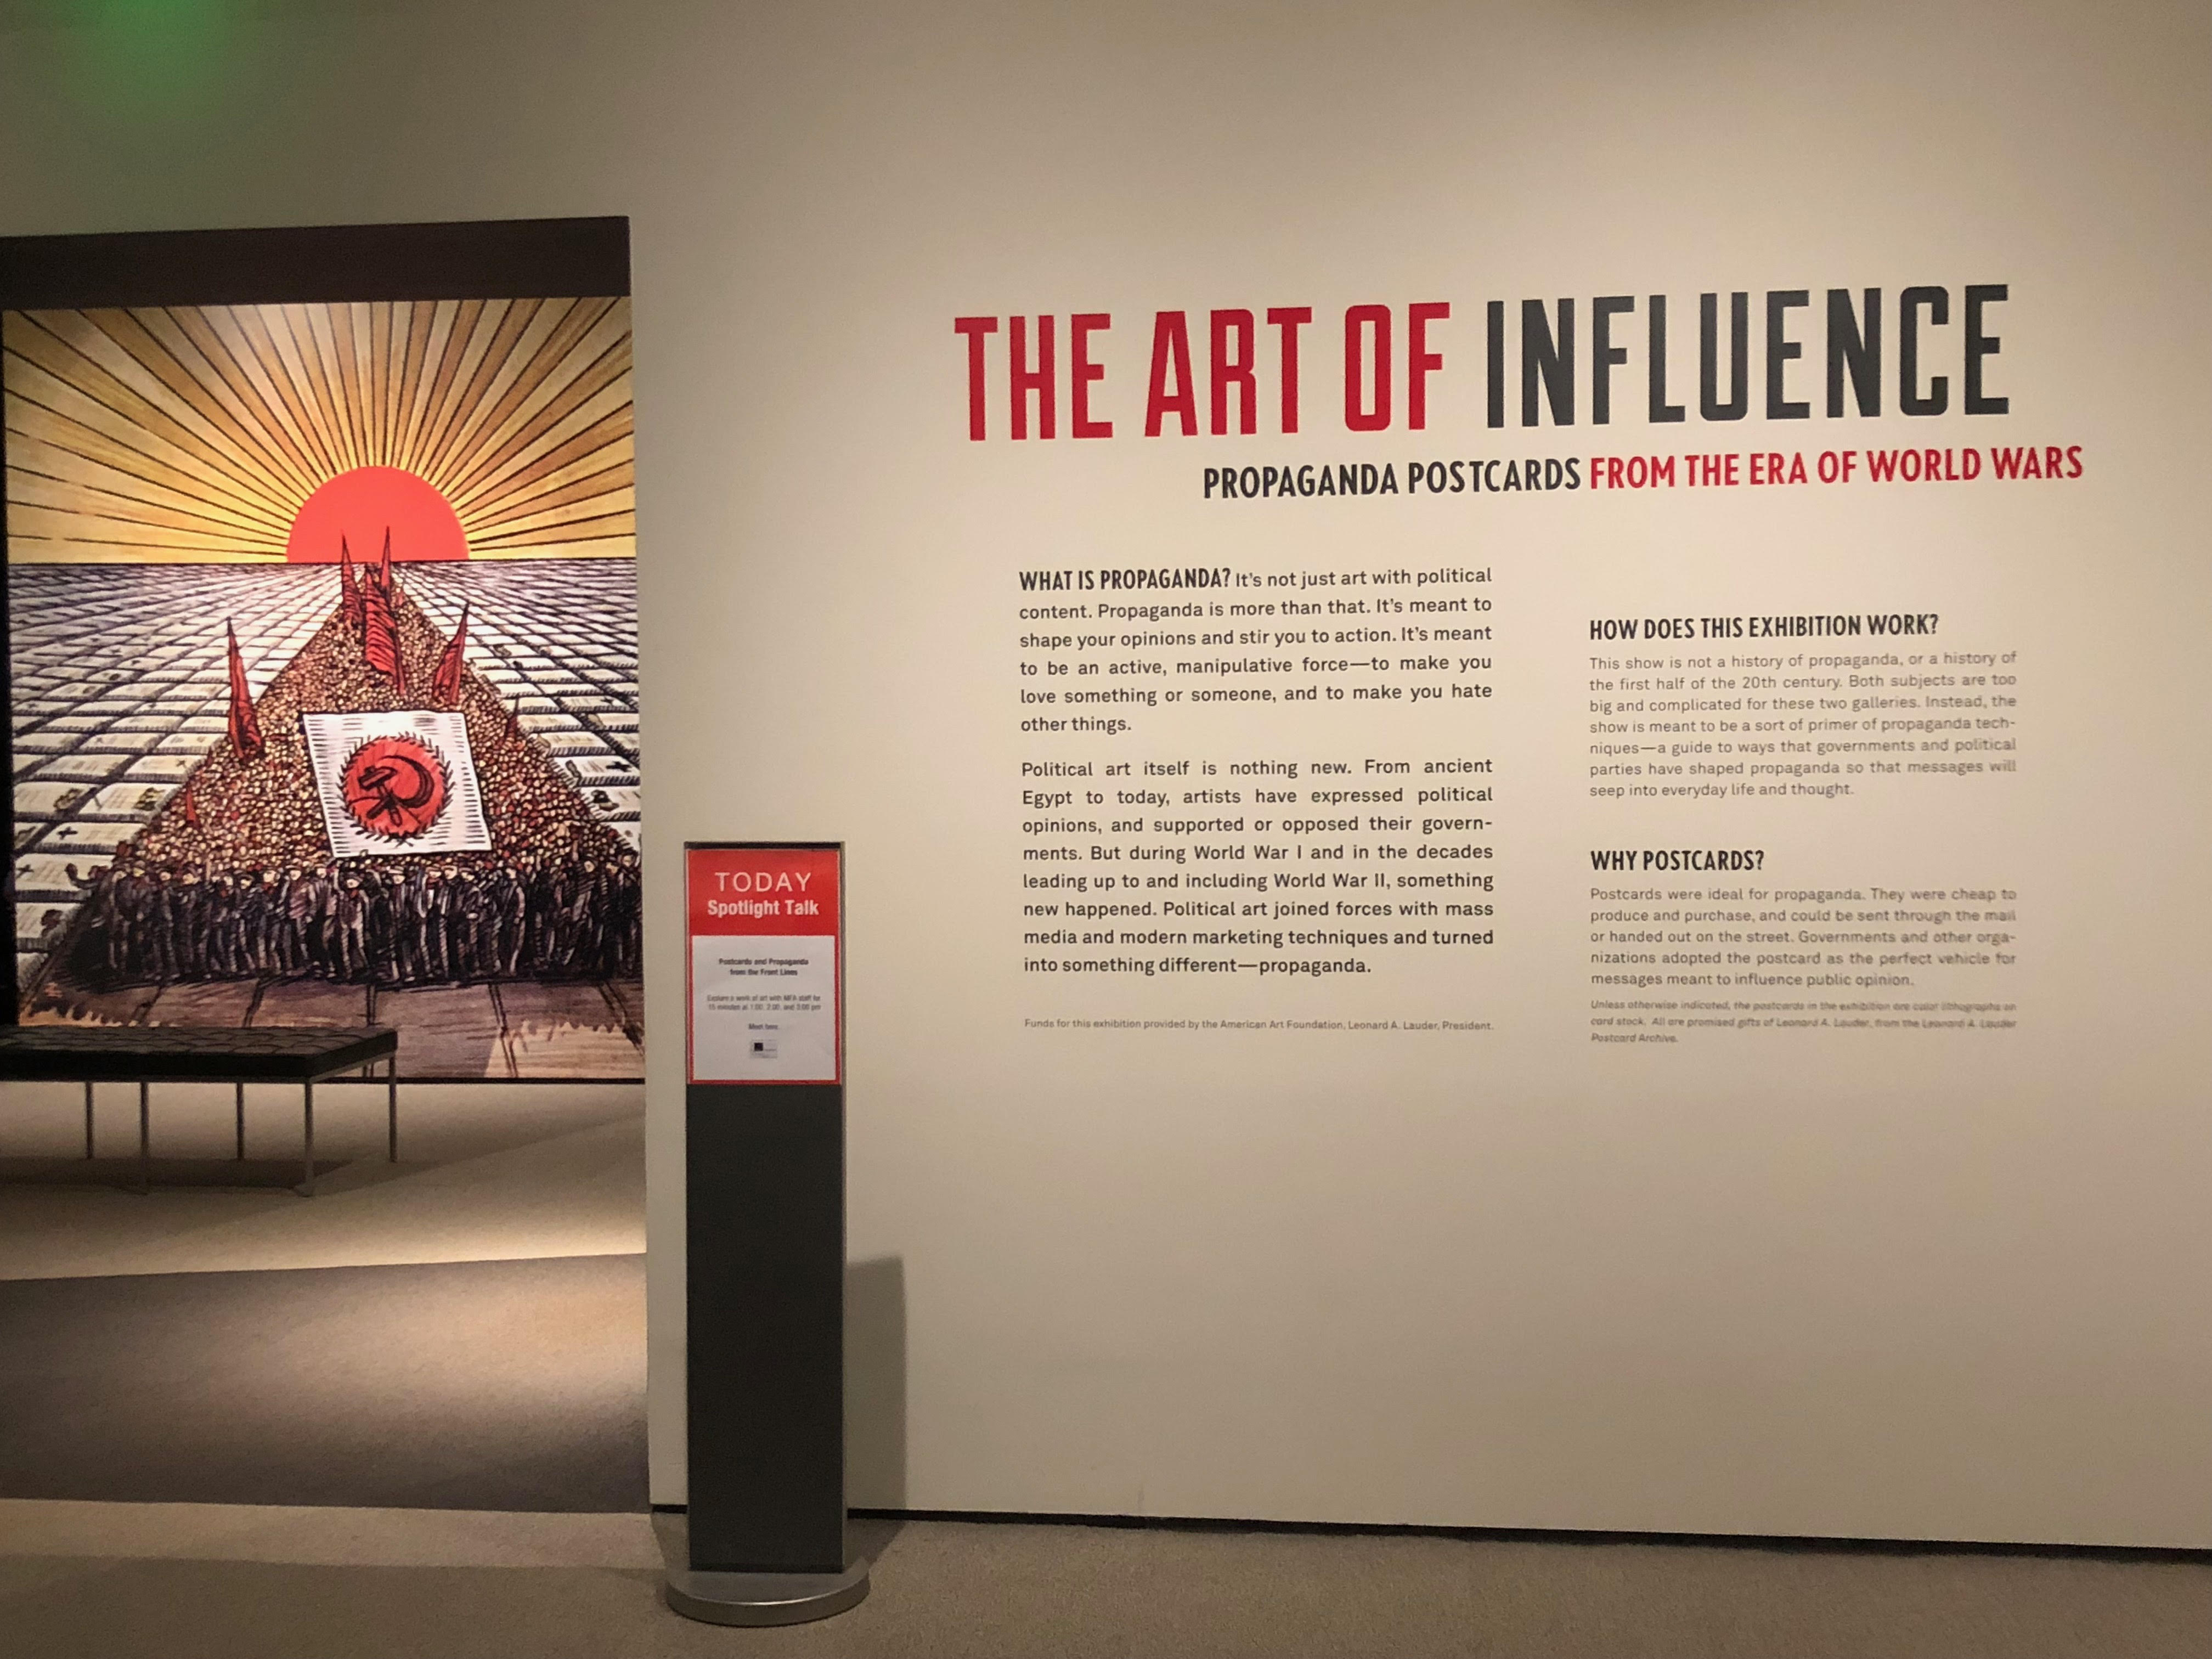 Art of Influence exhibit at the Museum of Fine Arts Boston